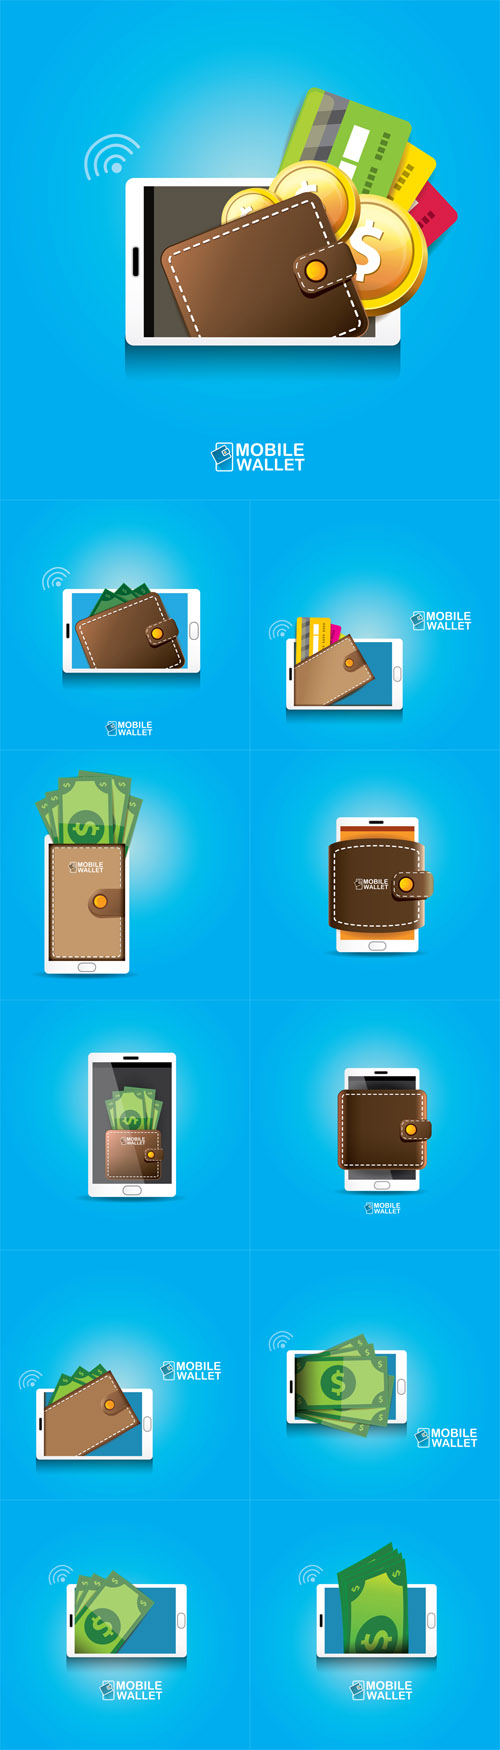 Vector Digital Mobile Wallet Concept Icons 2